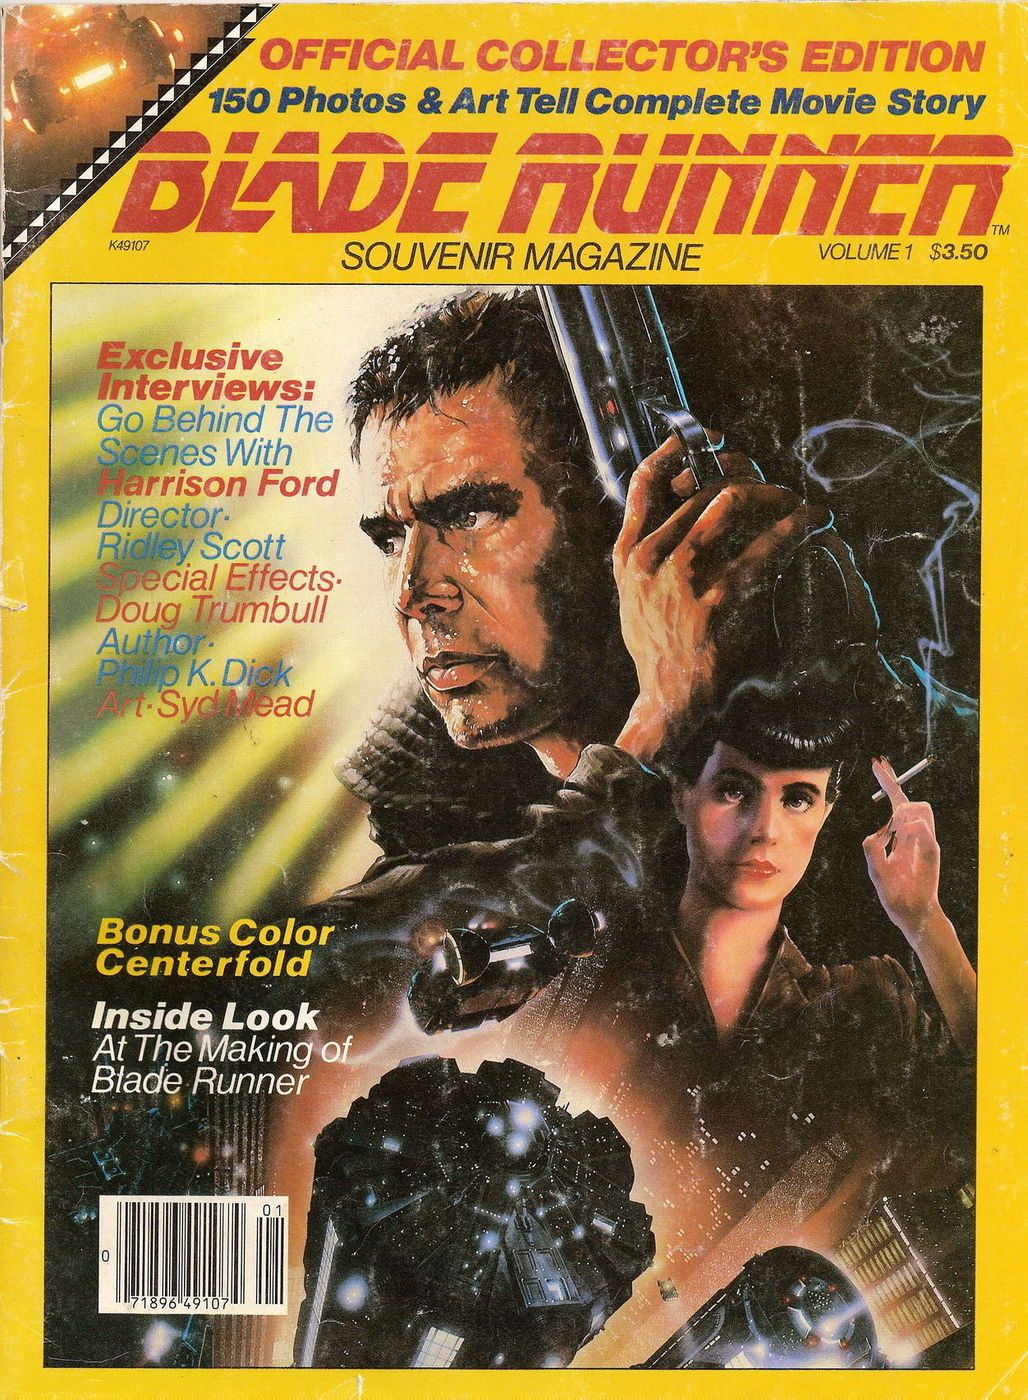 blade runner official movie poster magazine google search blade runner official movie poster magazine google search